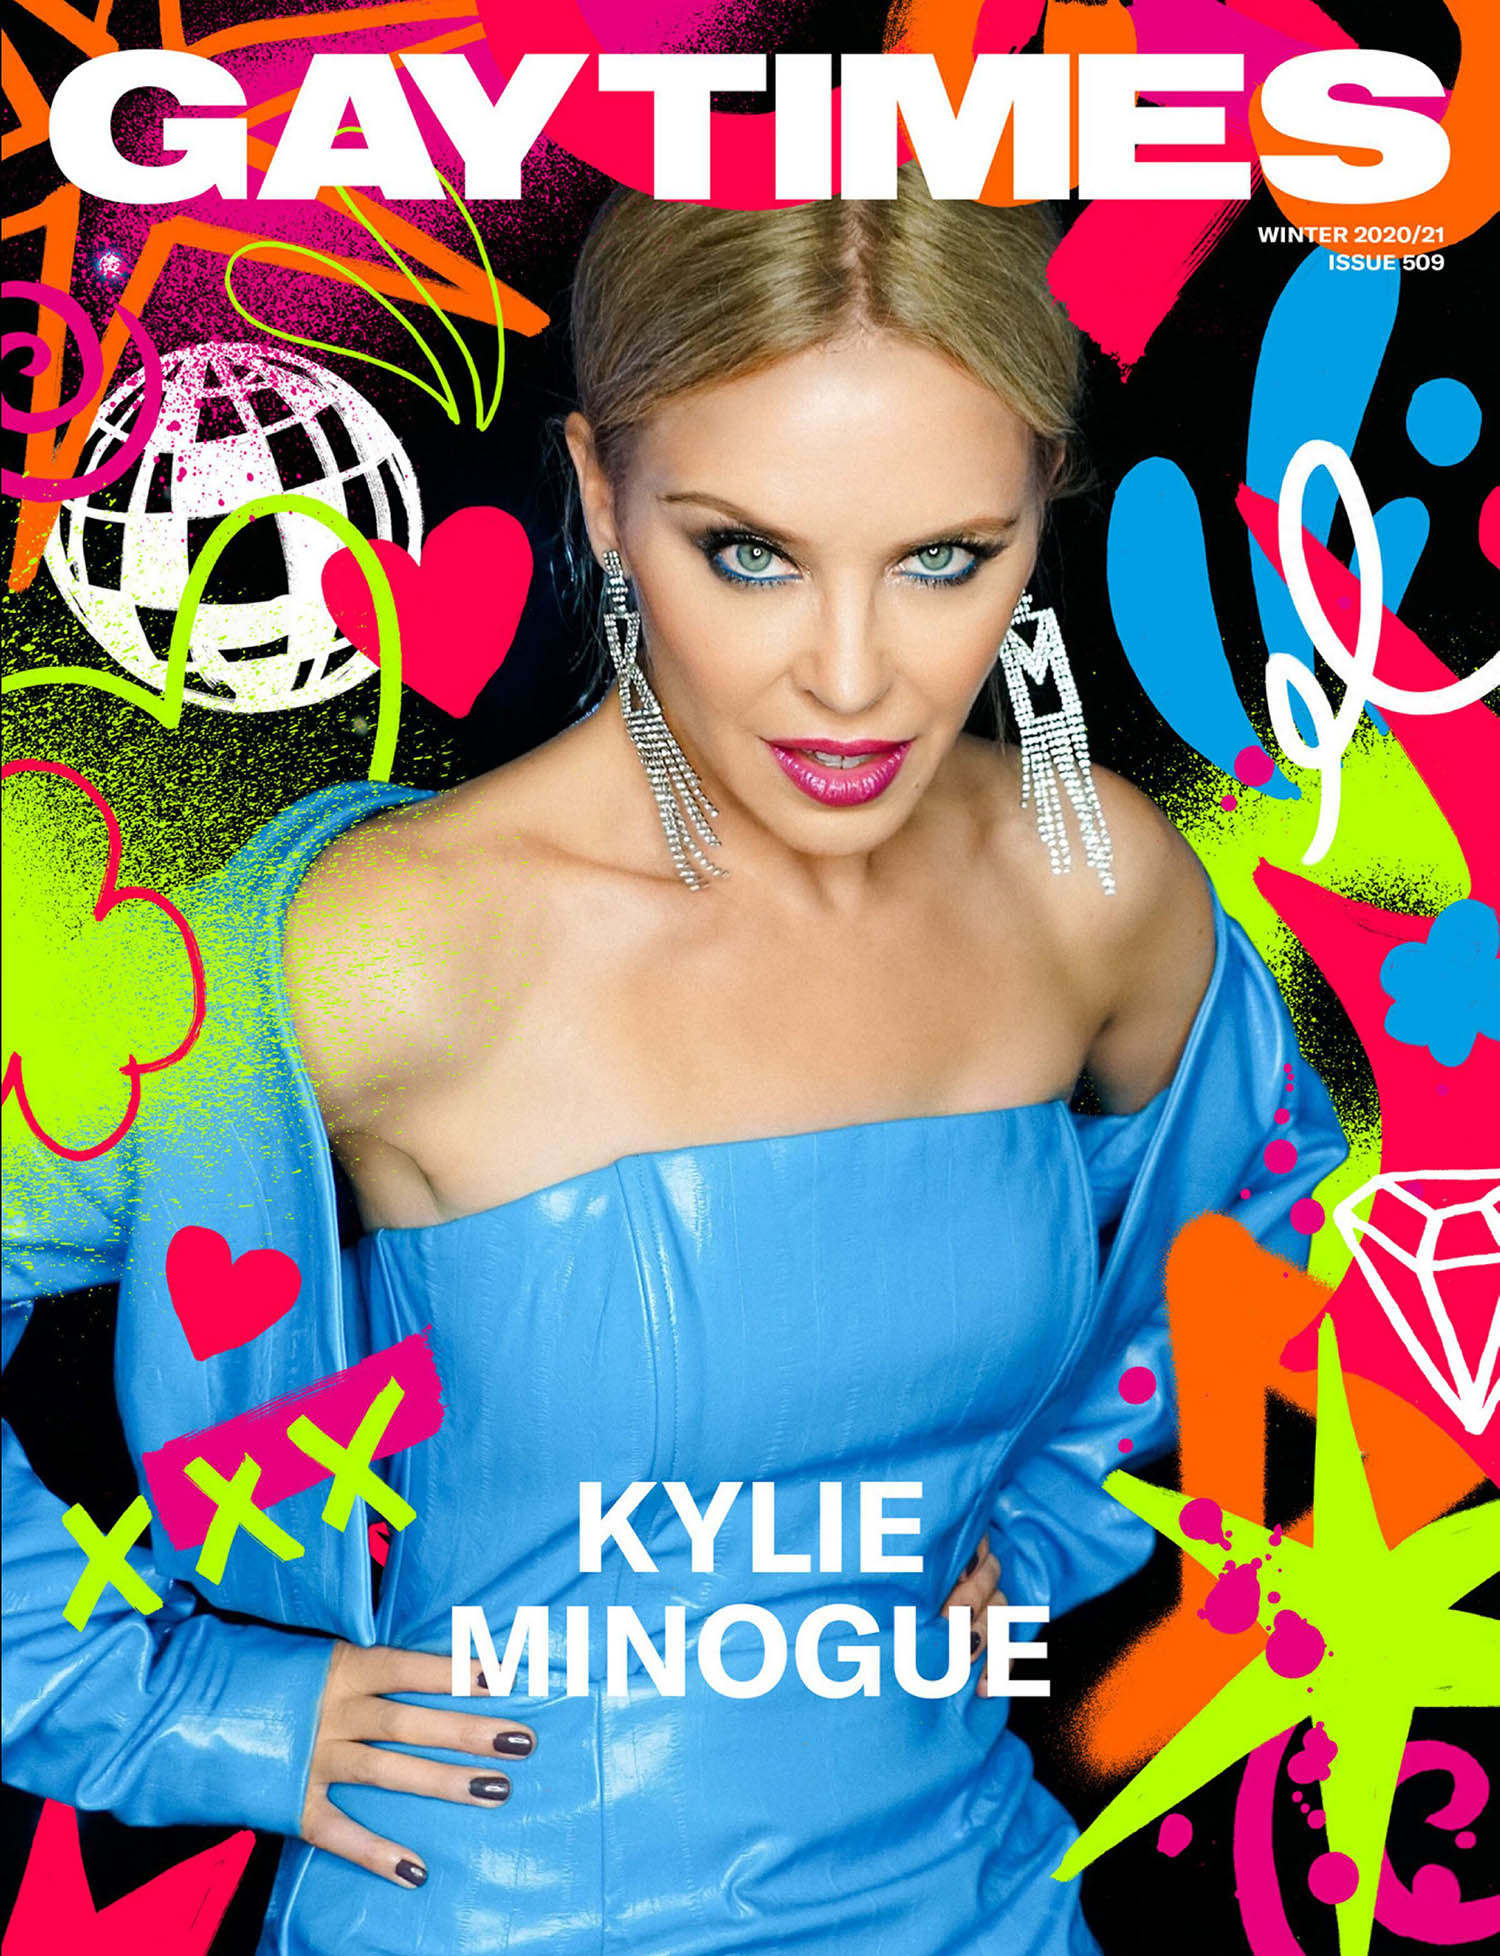 Kylie Minogue covers Gay Times Issue 509 by Darenote Limited